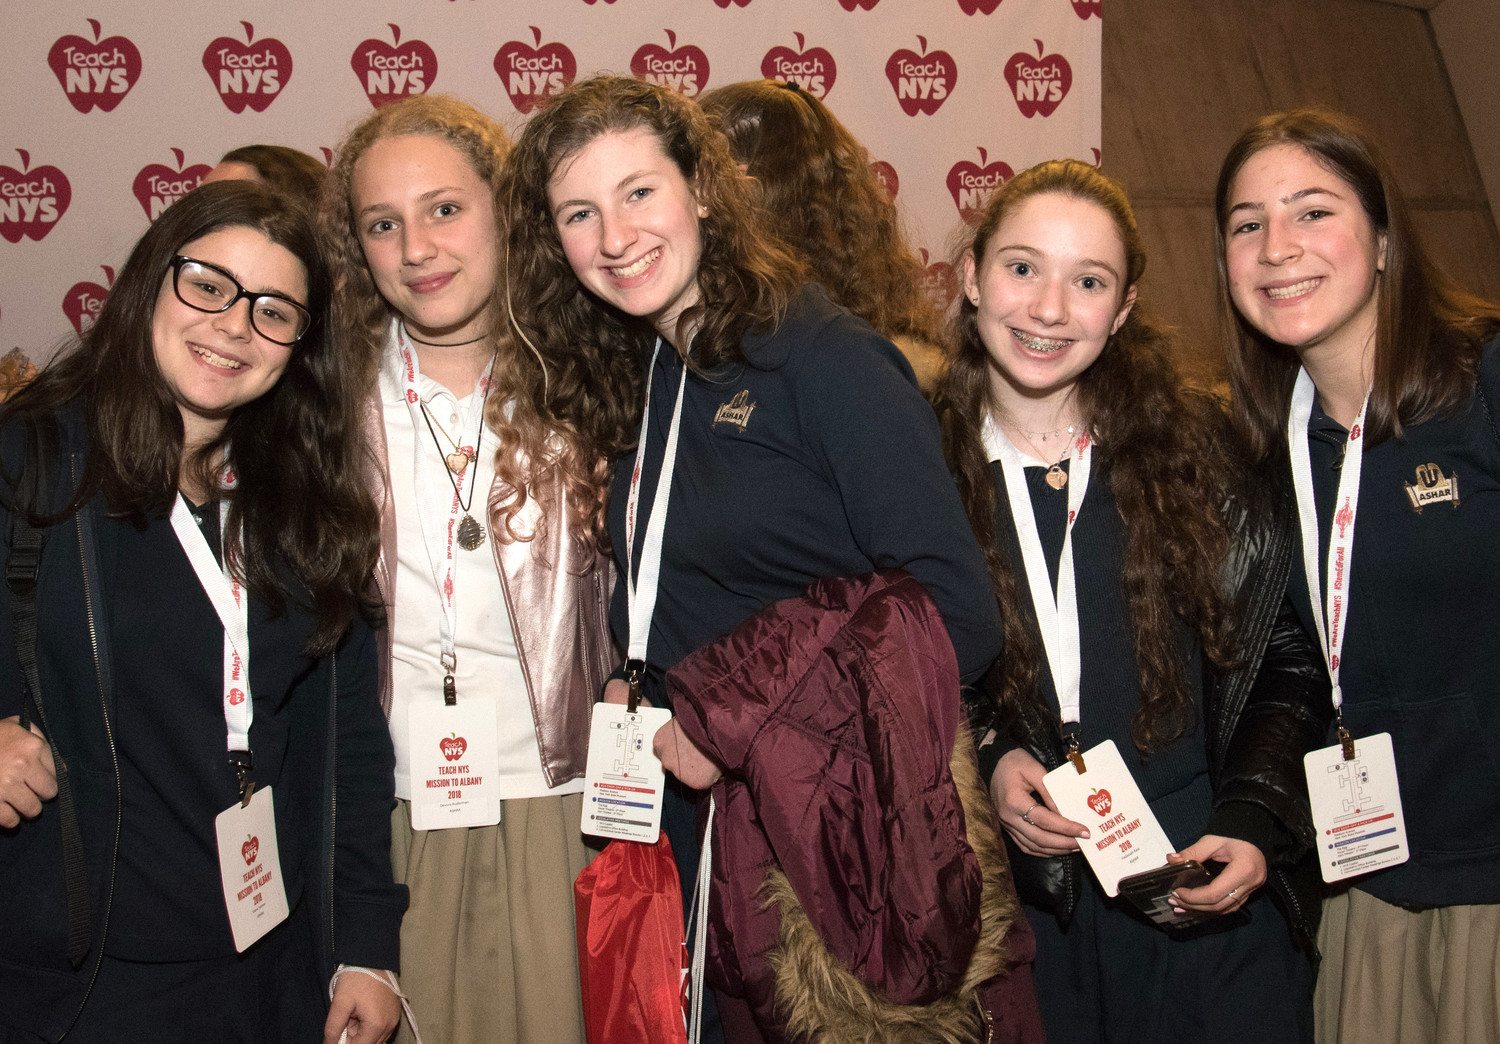 These girls from ASHAR — the Adolph H. Schreiber Hebrew Academy of Rockland, in New City — joined with Teach NYS in lobbying for a day in Albany.